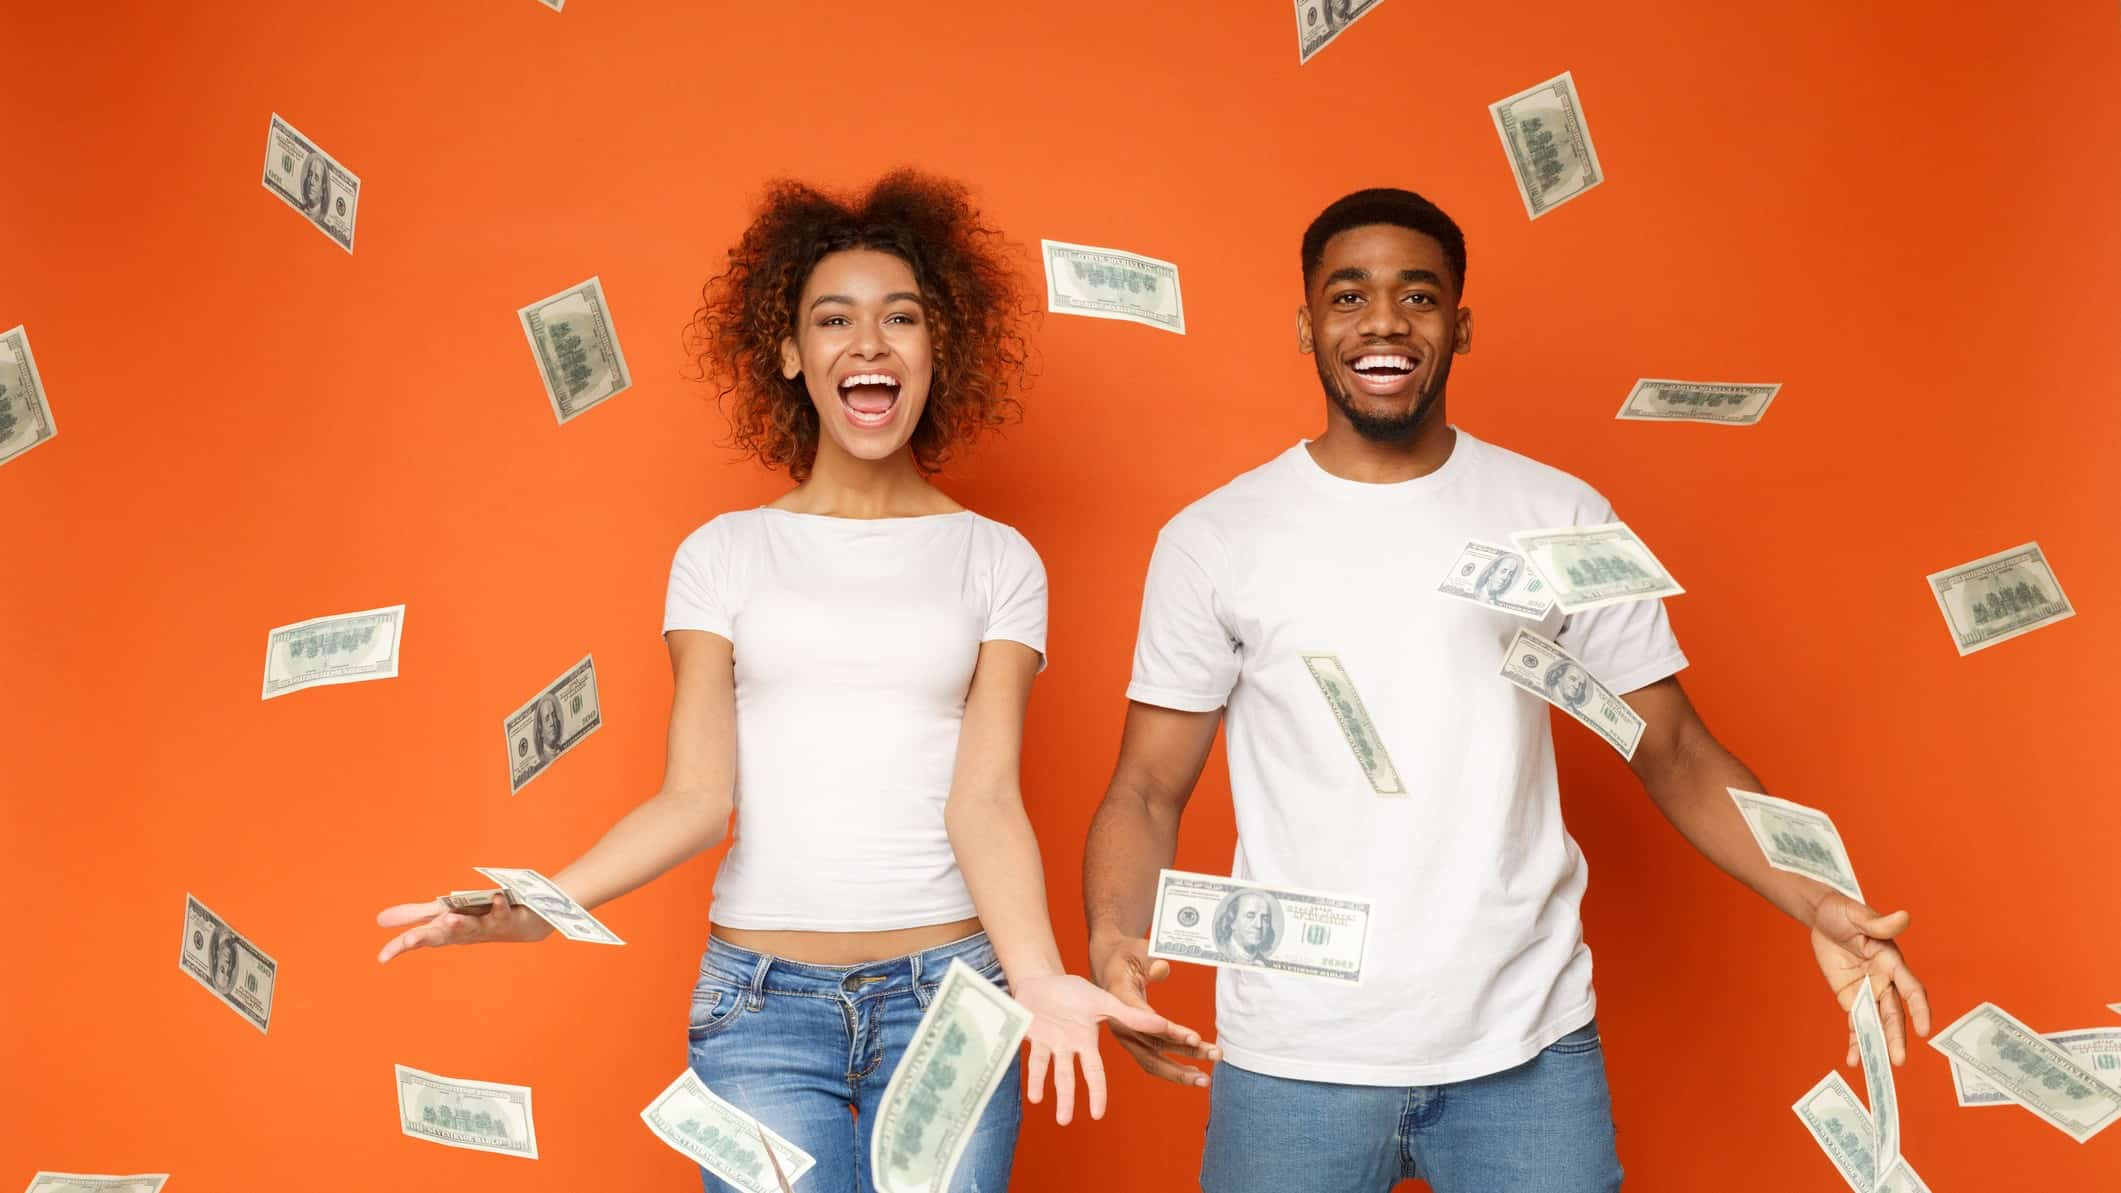 Happy young man and woman throwing dividend cash into air in front of orange background